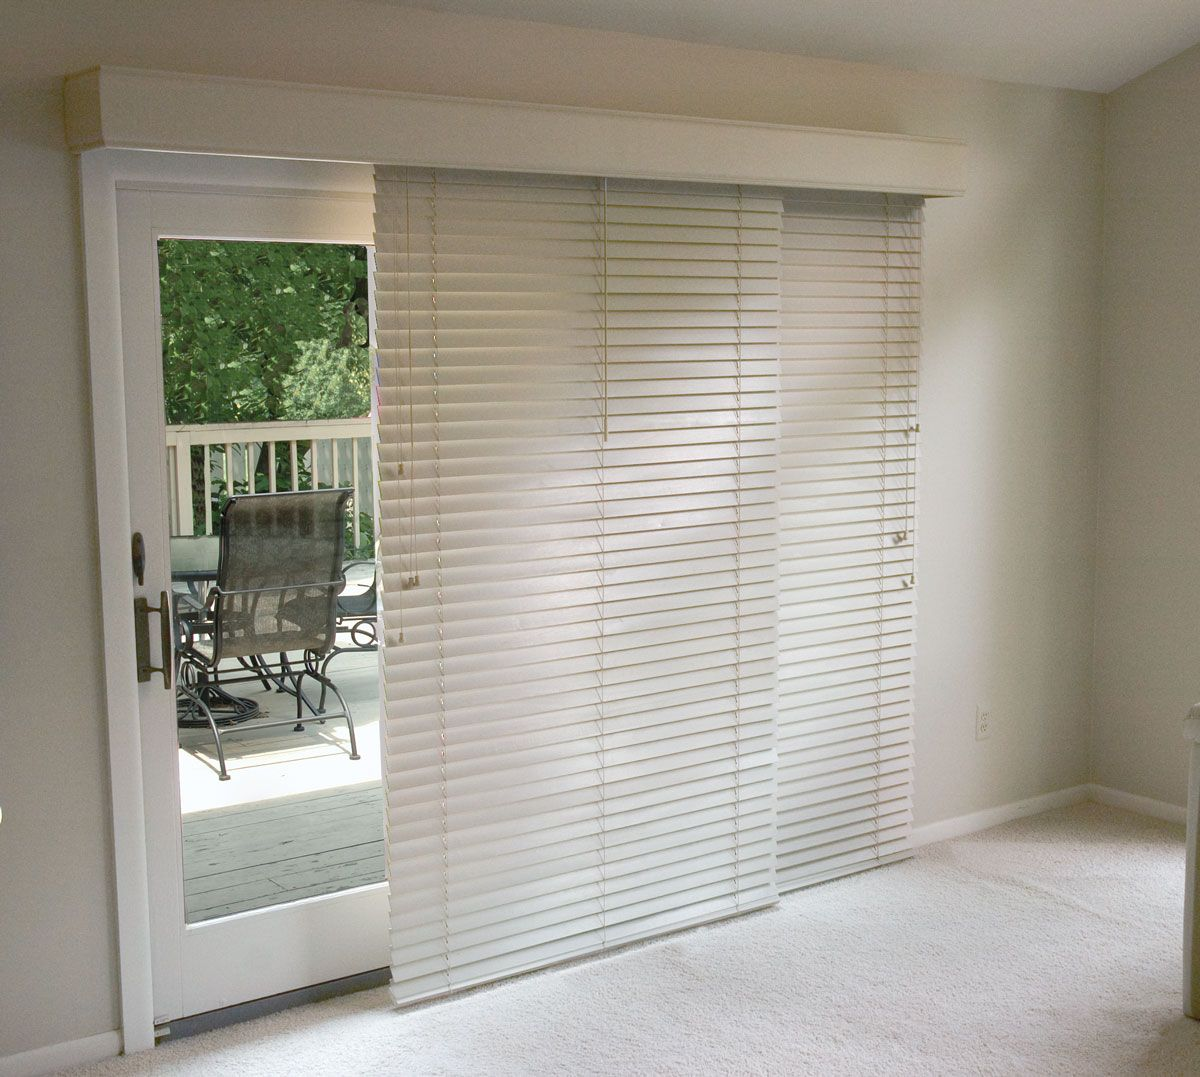 Home and office window treatments the glider blind track is a great